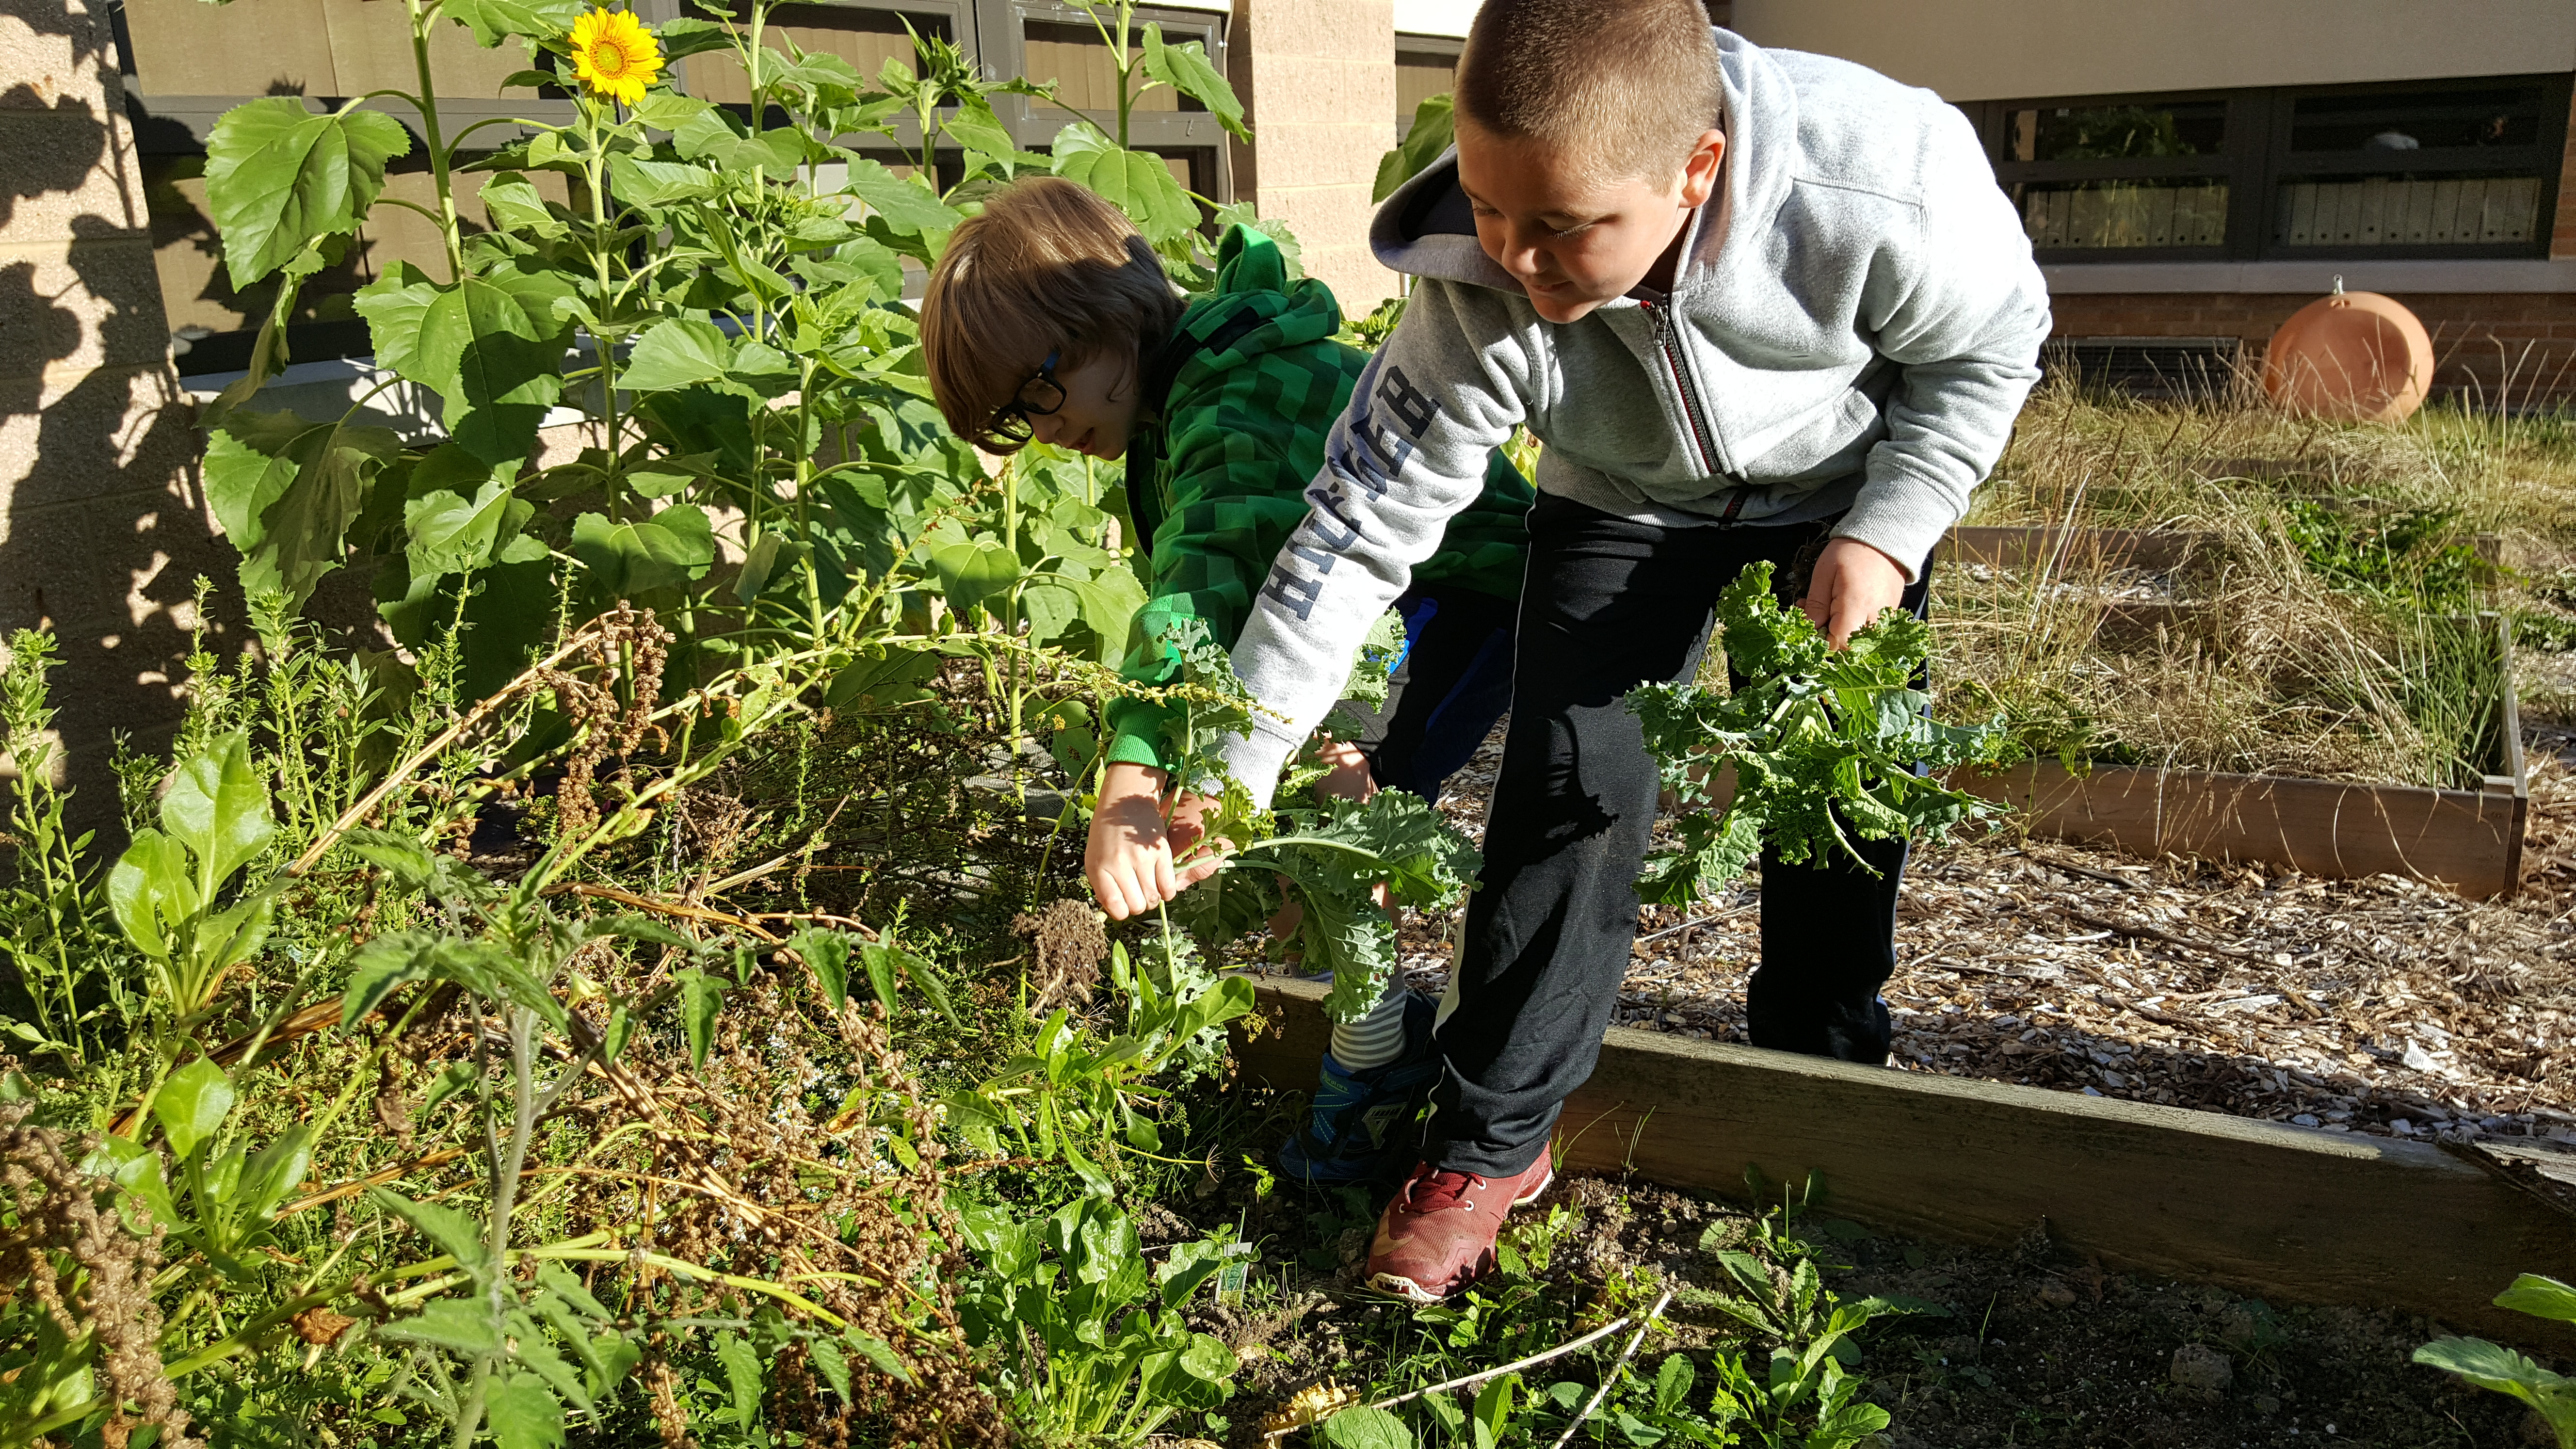 West Elementary Student picking Kale